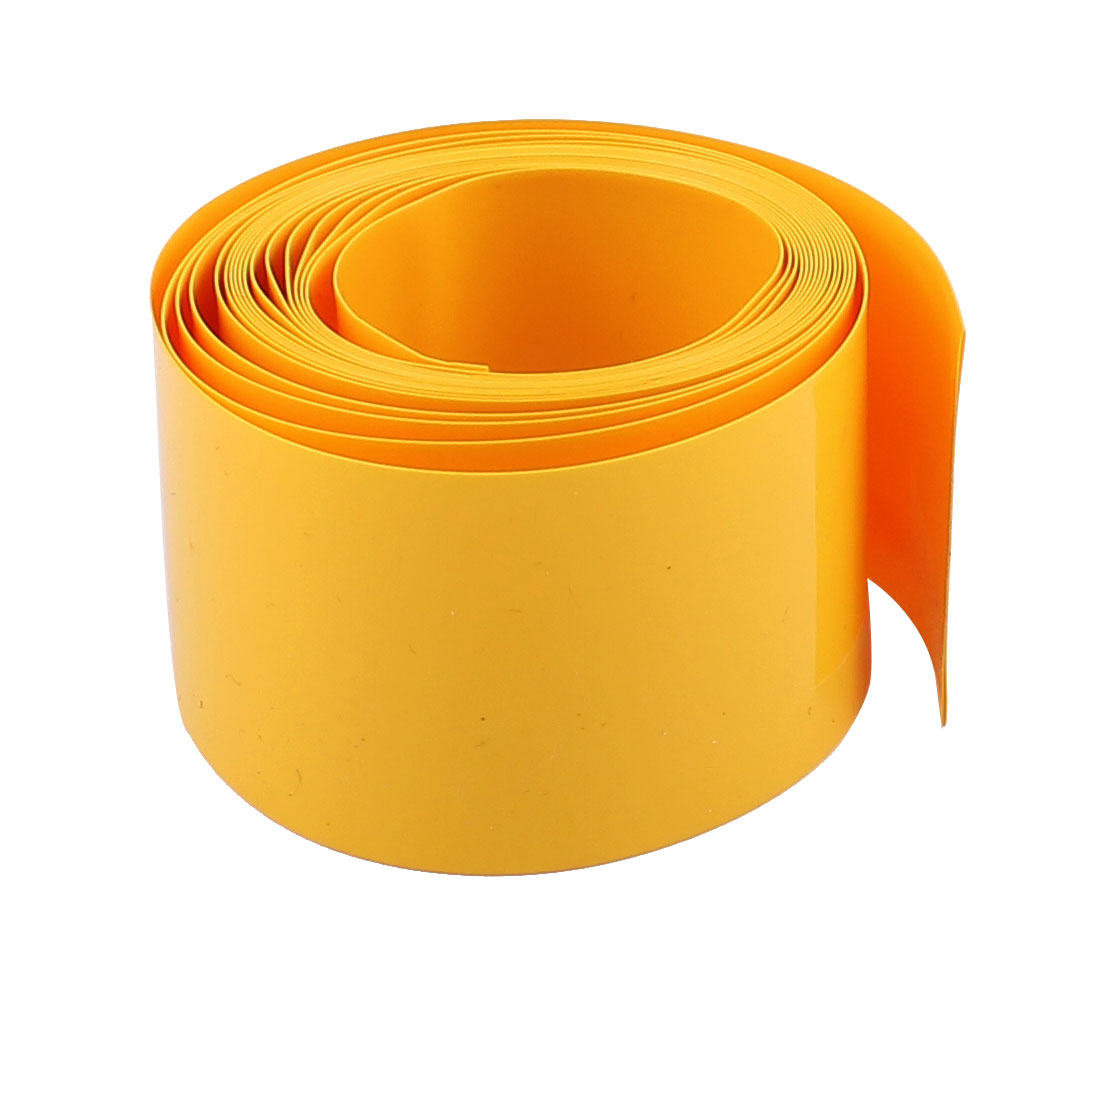 2m 18.5mm Dia PVC Insulated Heat Shrinkable Tube Battery Protective Casing Yellow